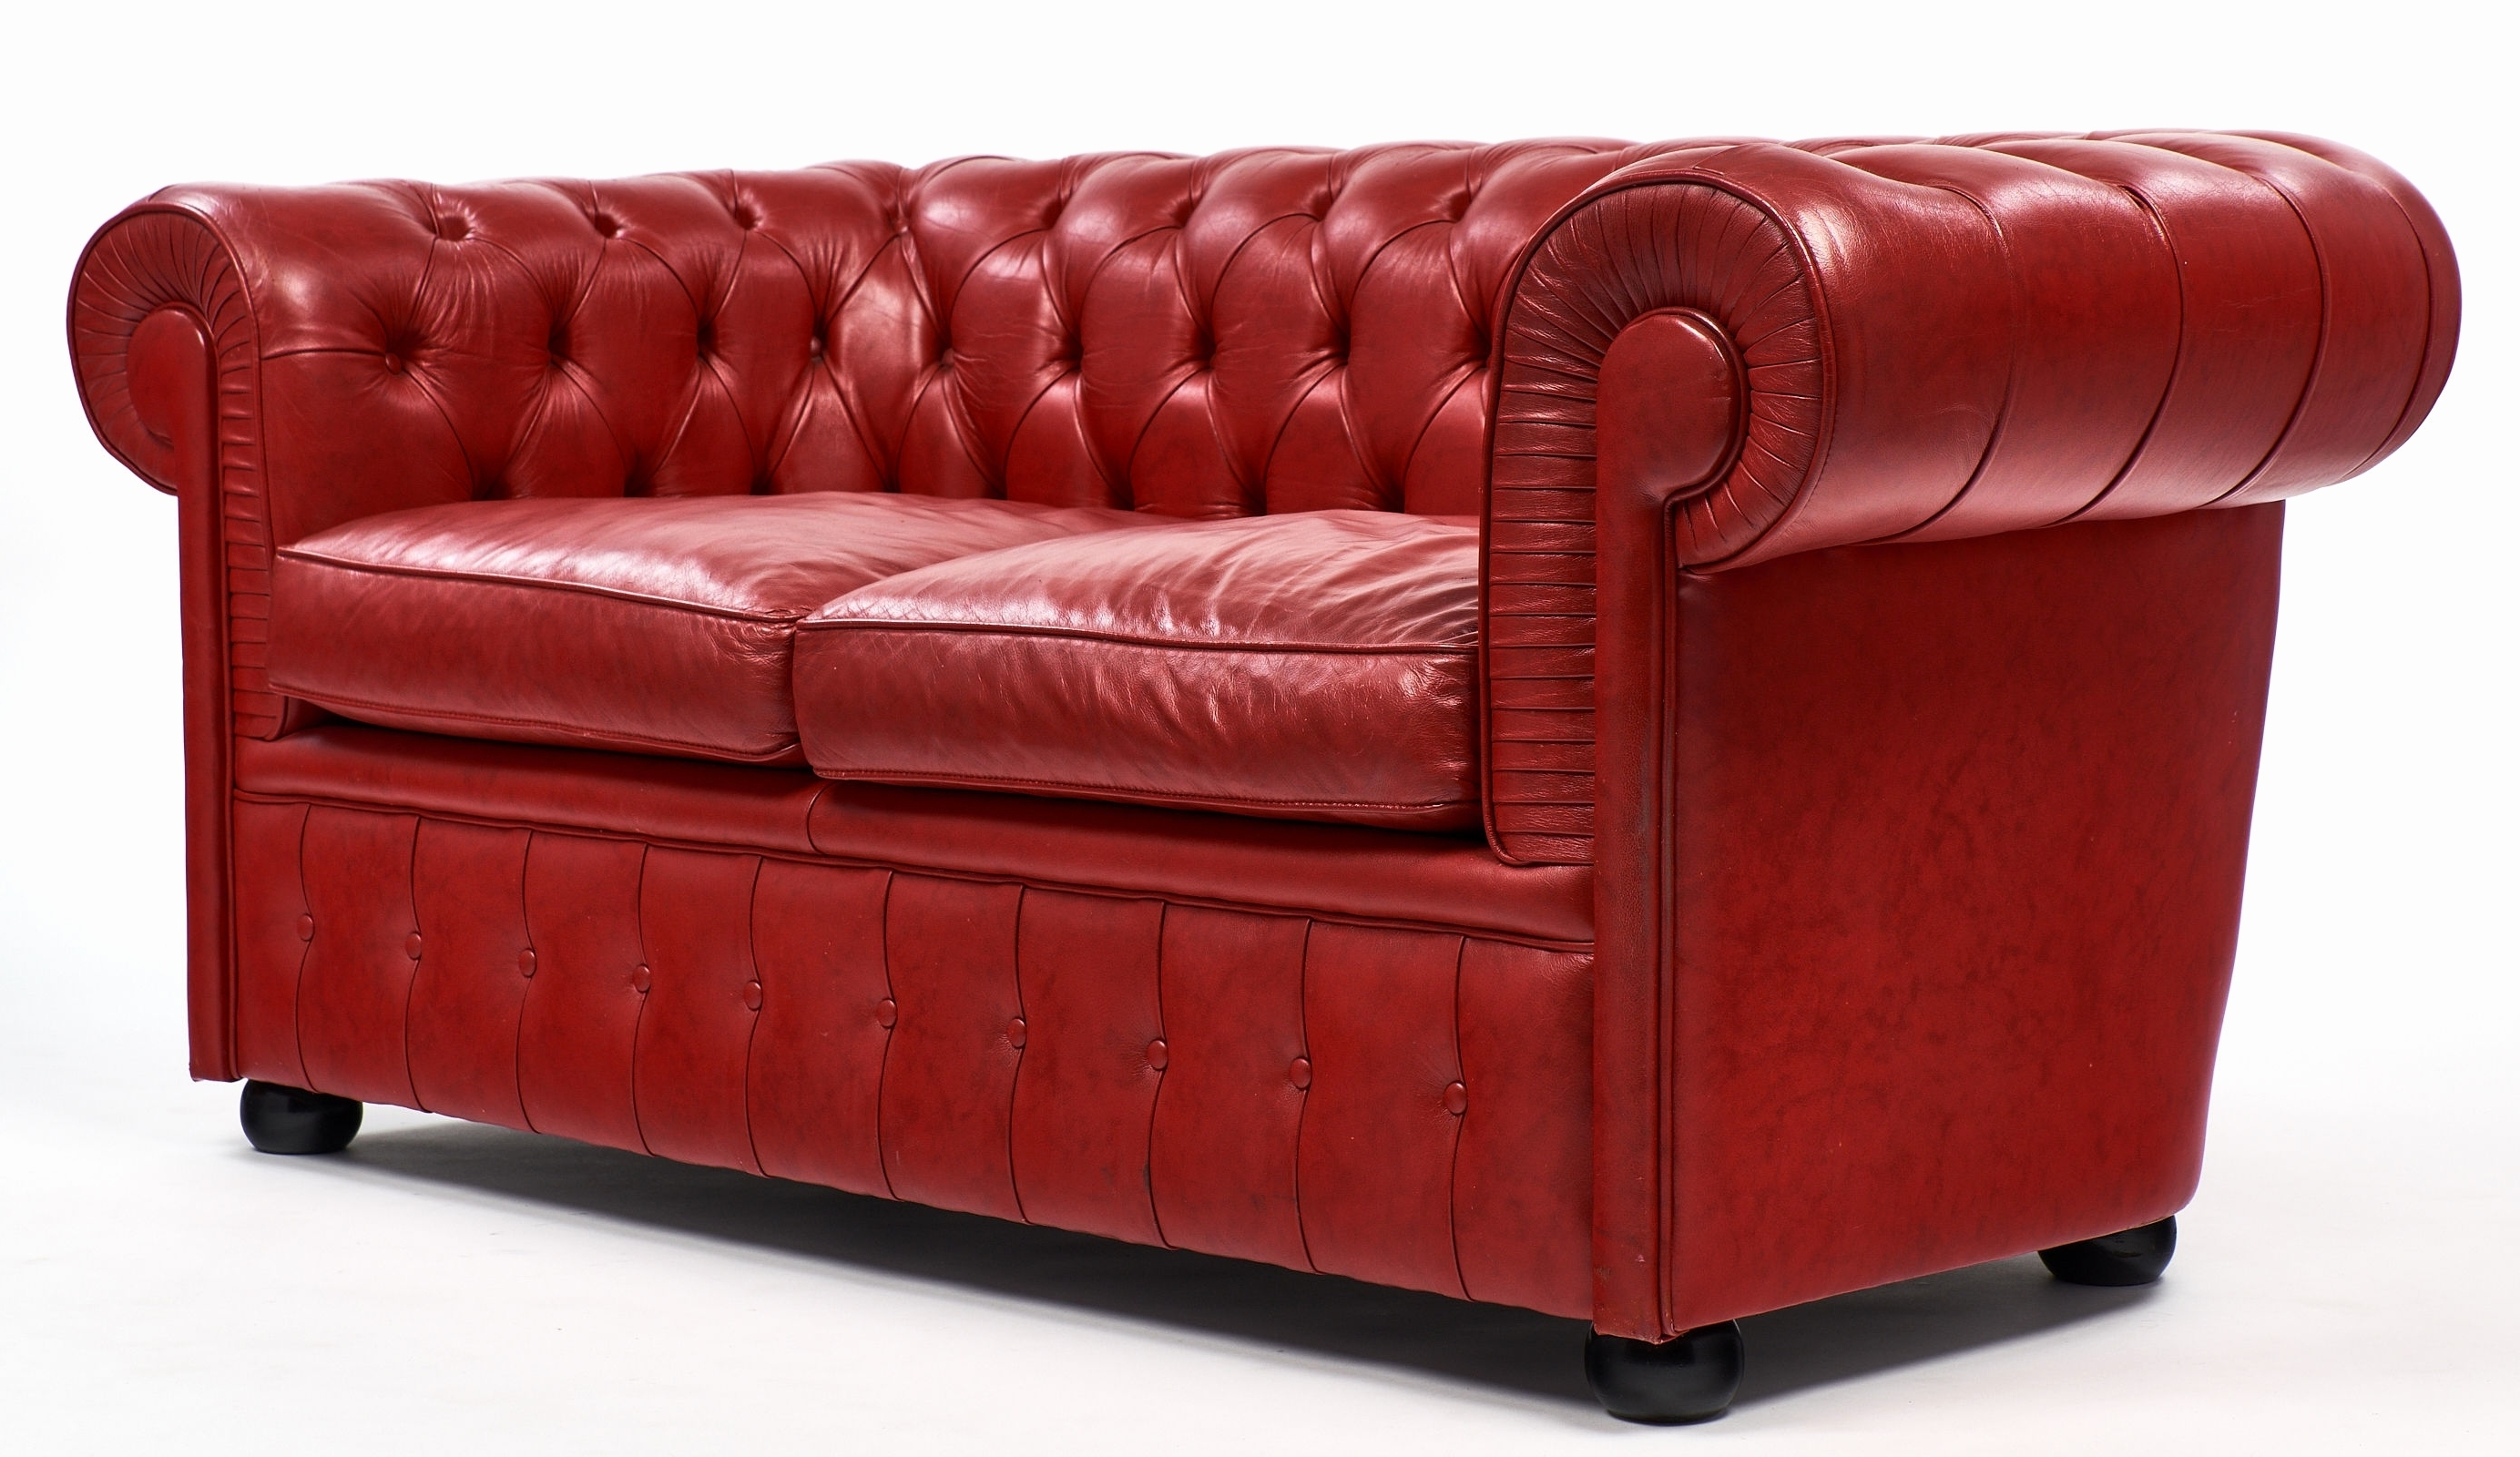 Favorite Vintage Chesterfield Sofas With Regard To Inspirational Red Chesterfield Sofa 2018 – Couches And Sofas Ideas (View 19 of 20)